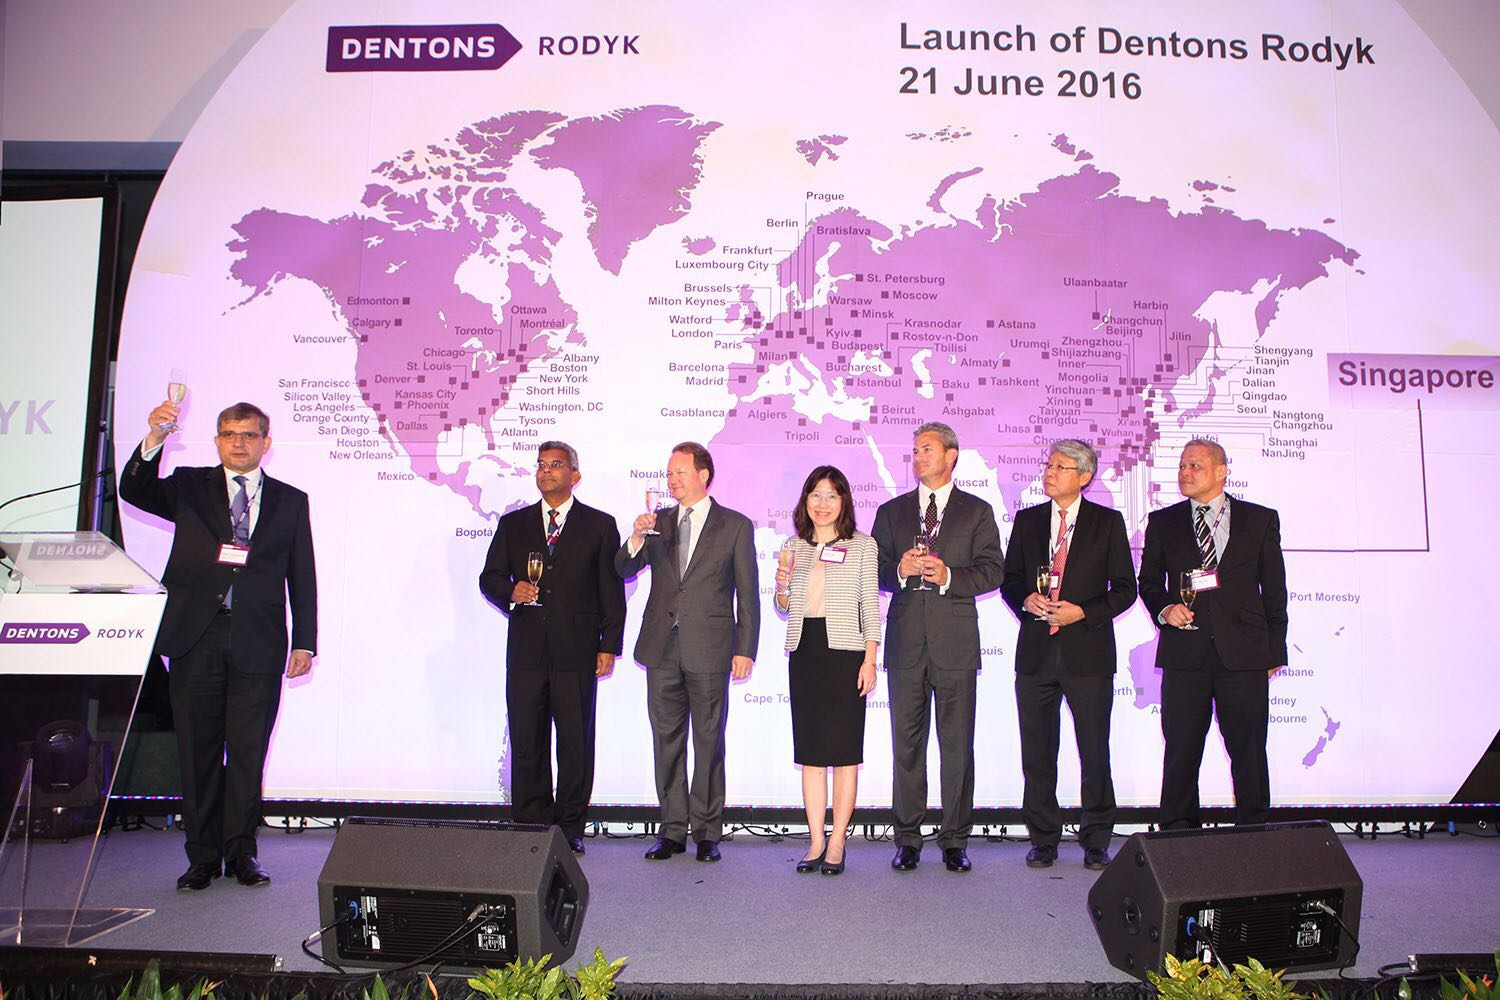 Toast by Dentons Global Chairman, Joe Andrew and Global CEO, Elliott Portnoy, Philip Jeyaretnam, SC, Dentons Rodyk Regional CEO and Global Vice Chair